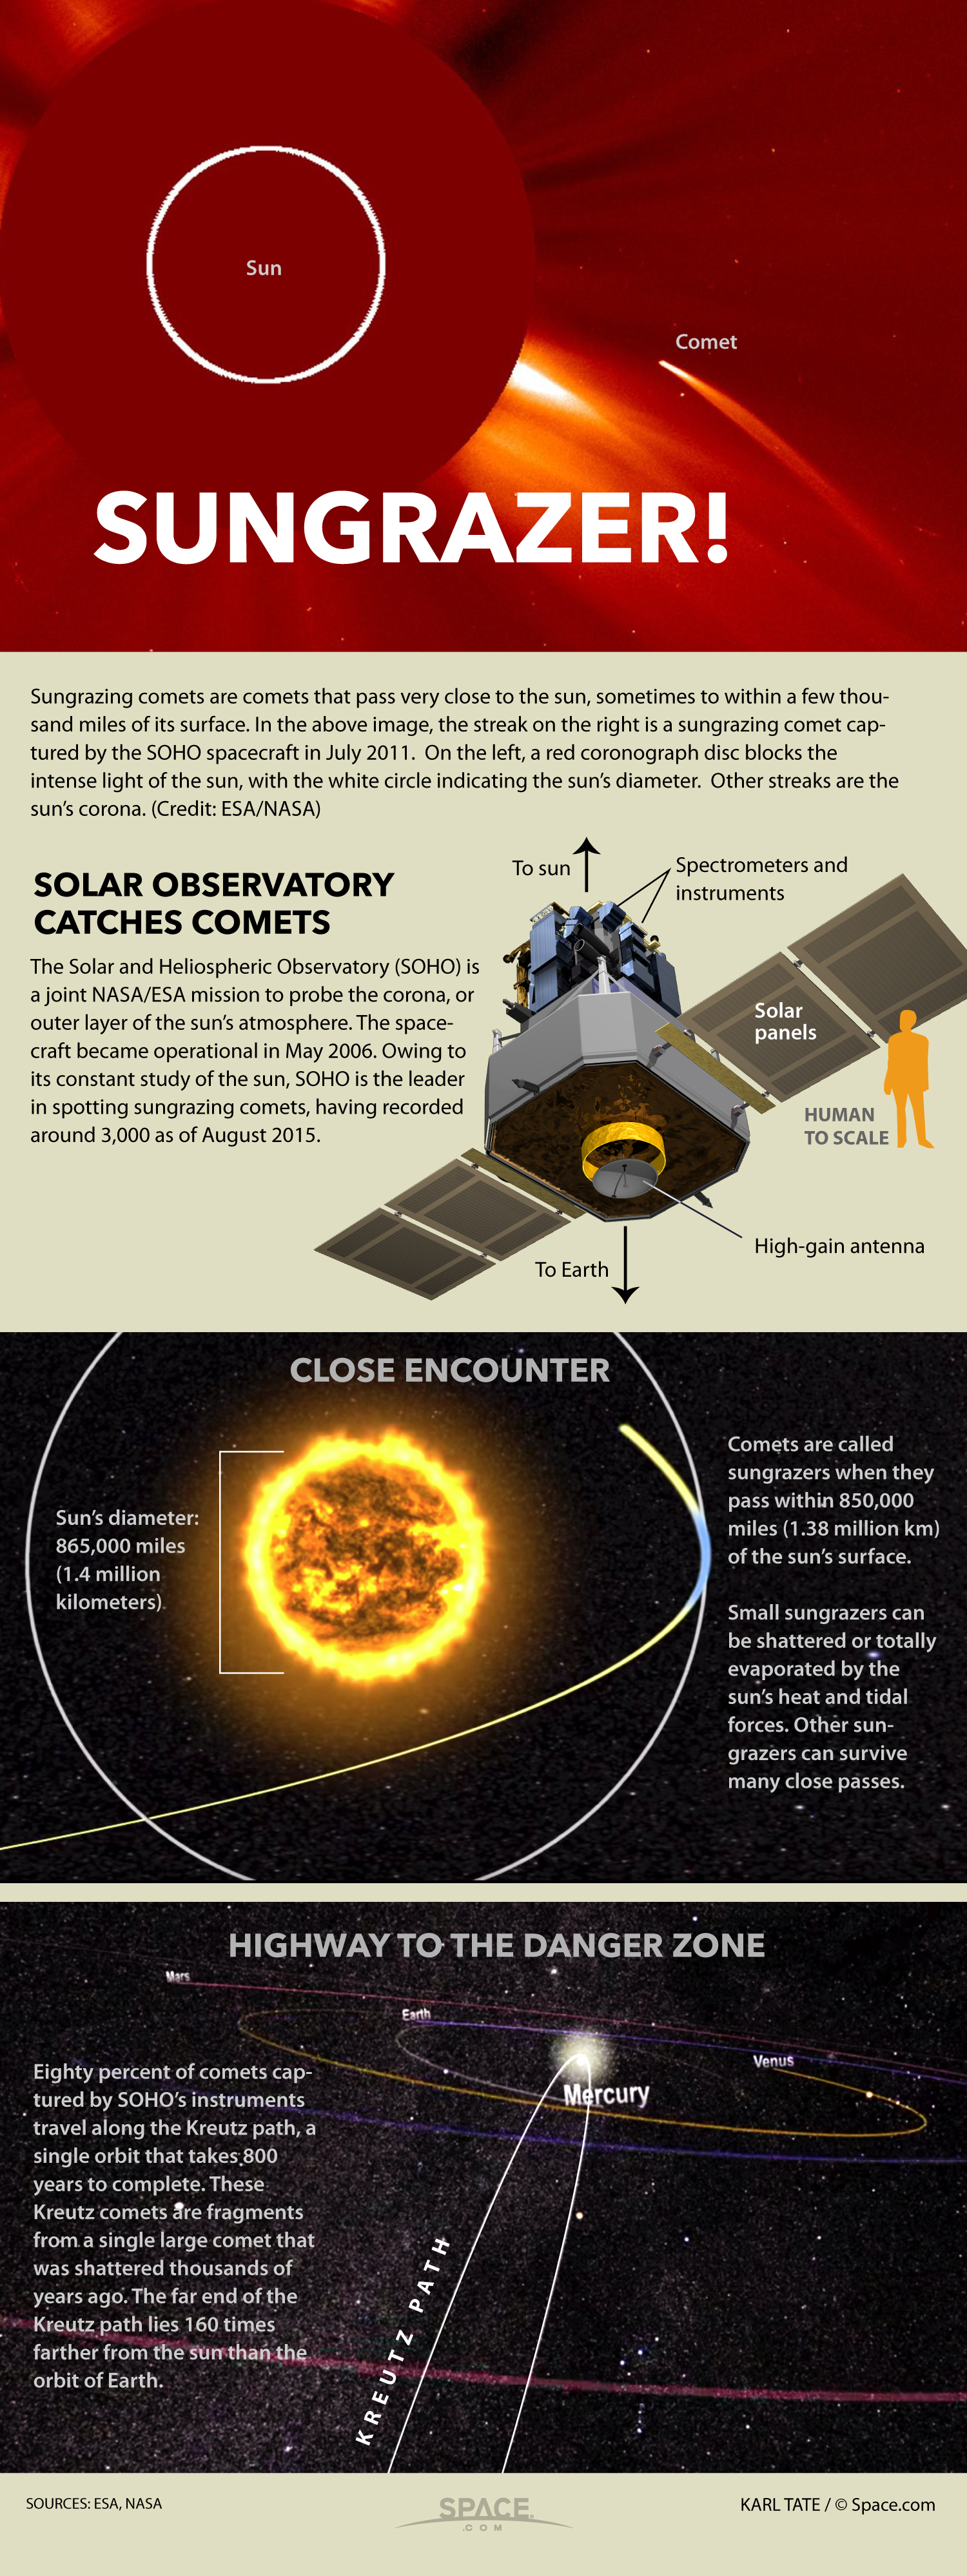 Sungrazing Comets: How They Dive-Bomb the Sun (Infographic)